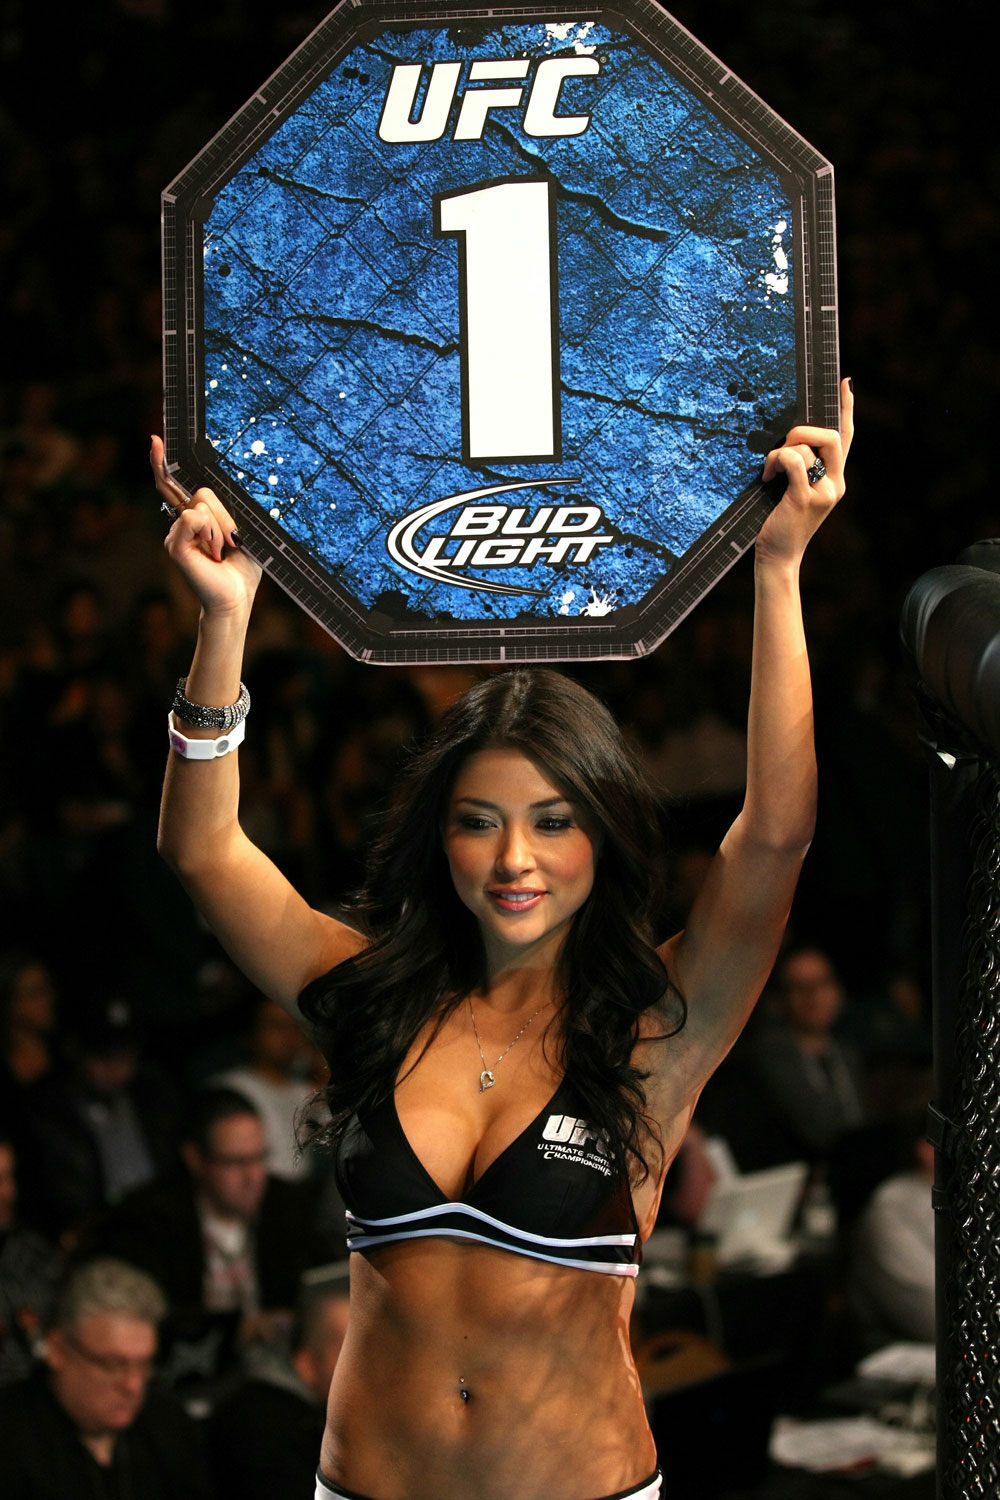 UFC 125: Octagon Girl, Arianny Celeste